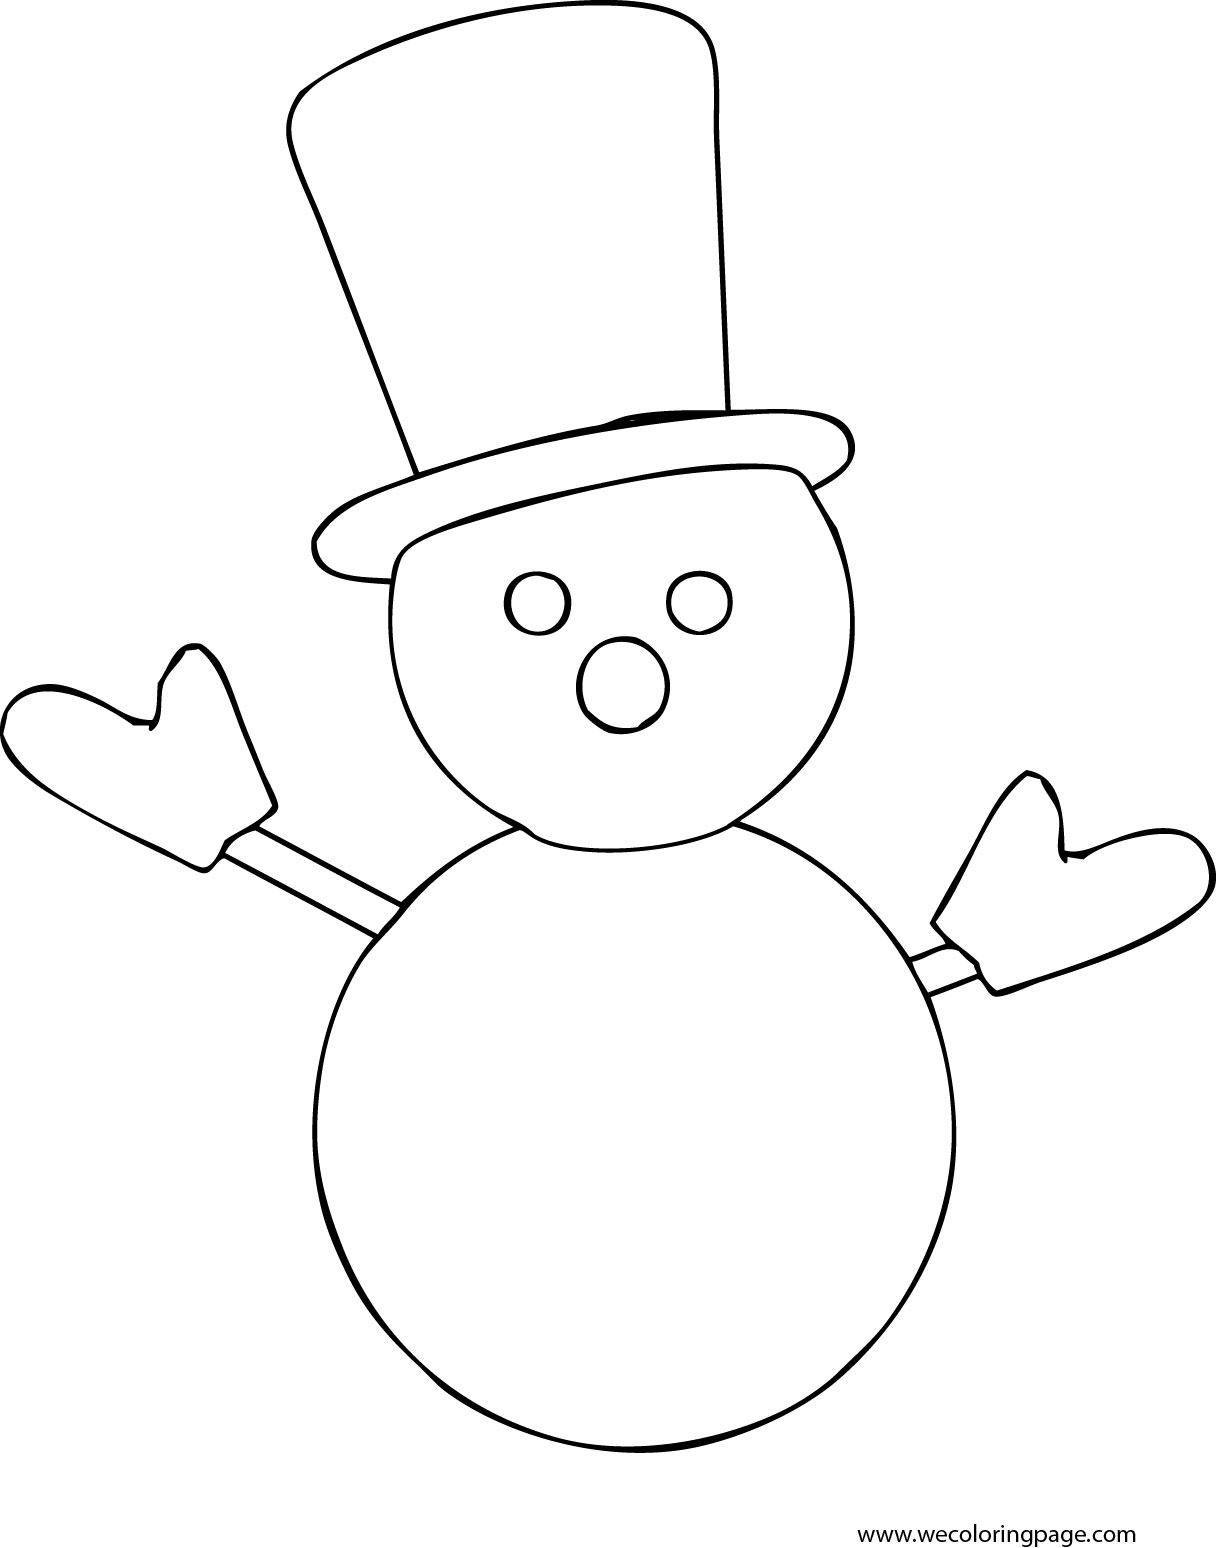 The Atmosphere Coloring Pages